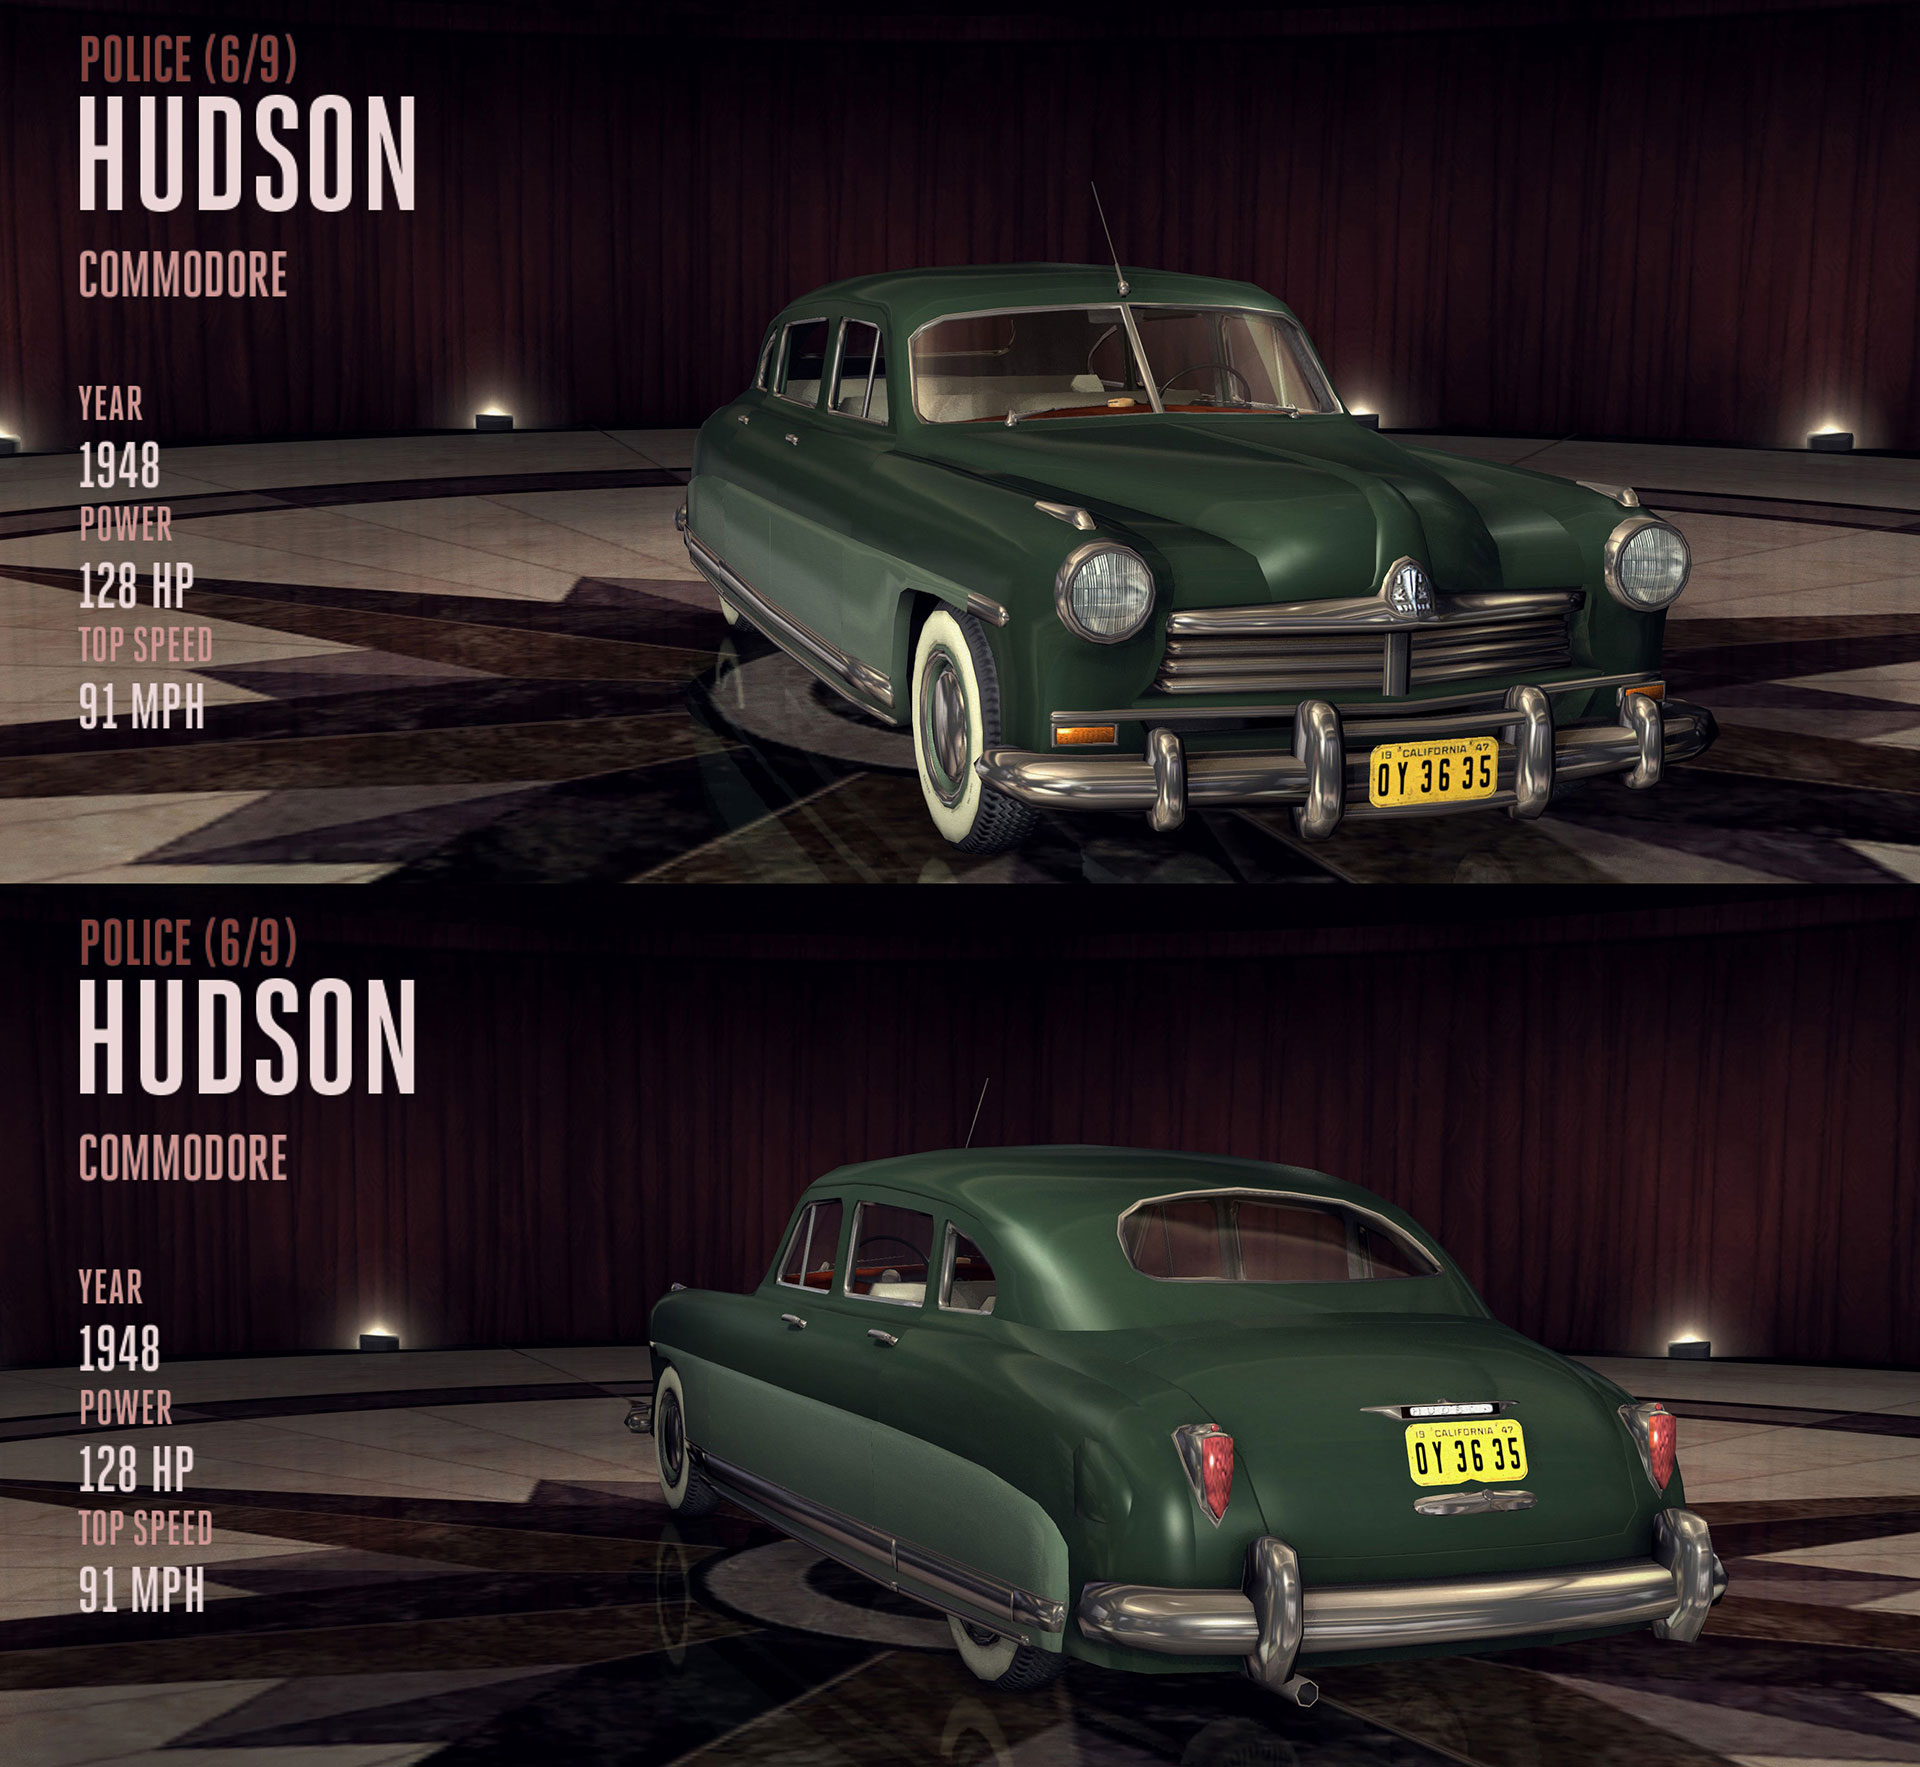 Archivo:1948-hudson-commodore.jpg